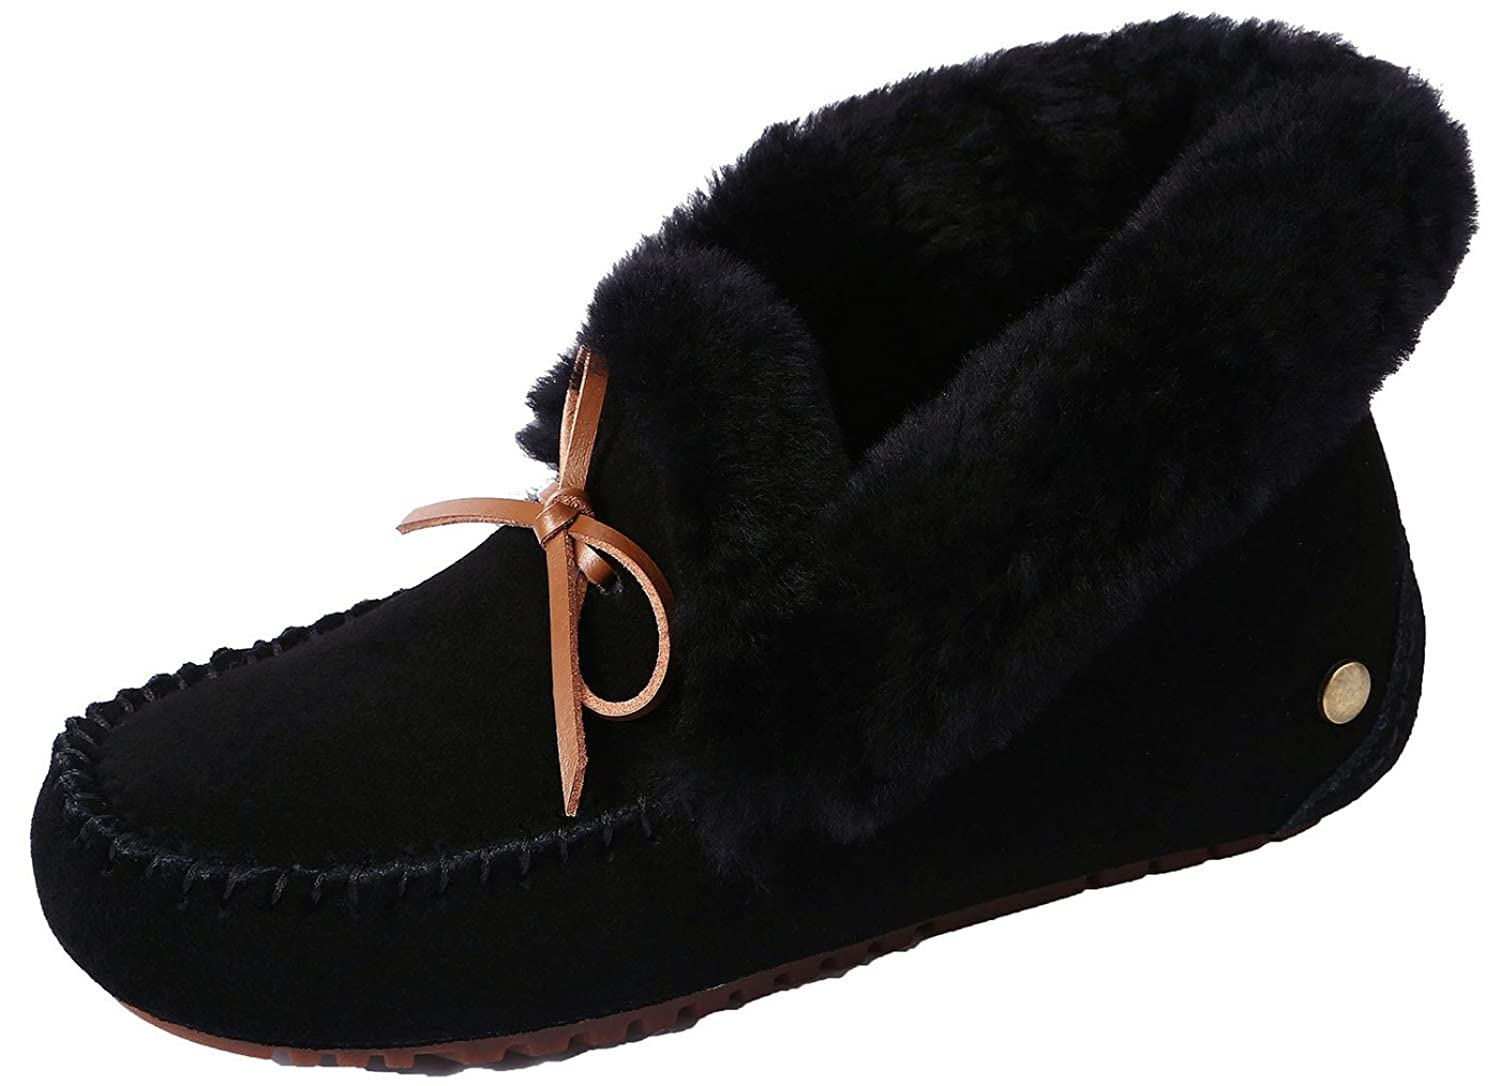 U-lite Women's Warm Fur Wool Slipper Casual Winter Slouch Flat Indoor&Outdoor Loafer, Wool Slippers for Women